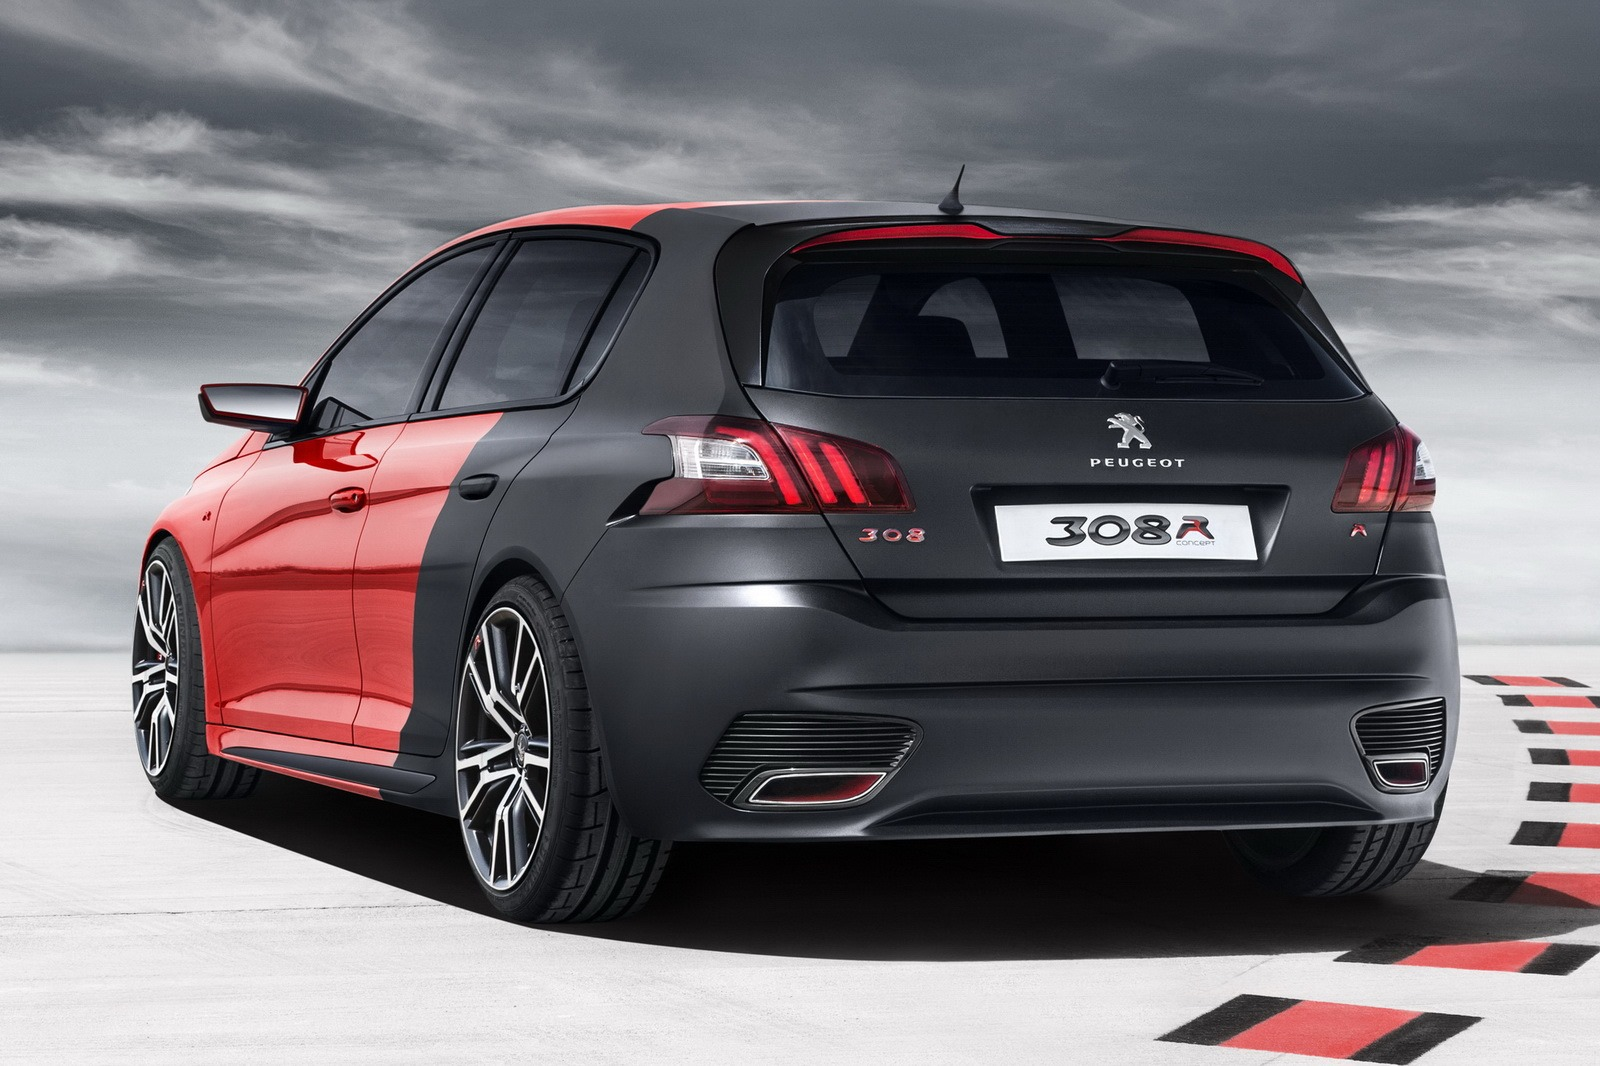 119486196338936663 moreover Check out the vyrus 984 c3 2v what do you think additionally Peugeot 308 R Concept Revealed 16 Turbo With 270 Hp Manual And Lsd 65766 likewise Overview likewise Mercedes Amg Gt Four Door 2019 Mercedes Cls Imagined Video. on rc electric motorcycle